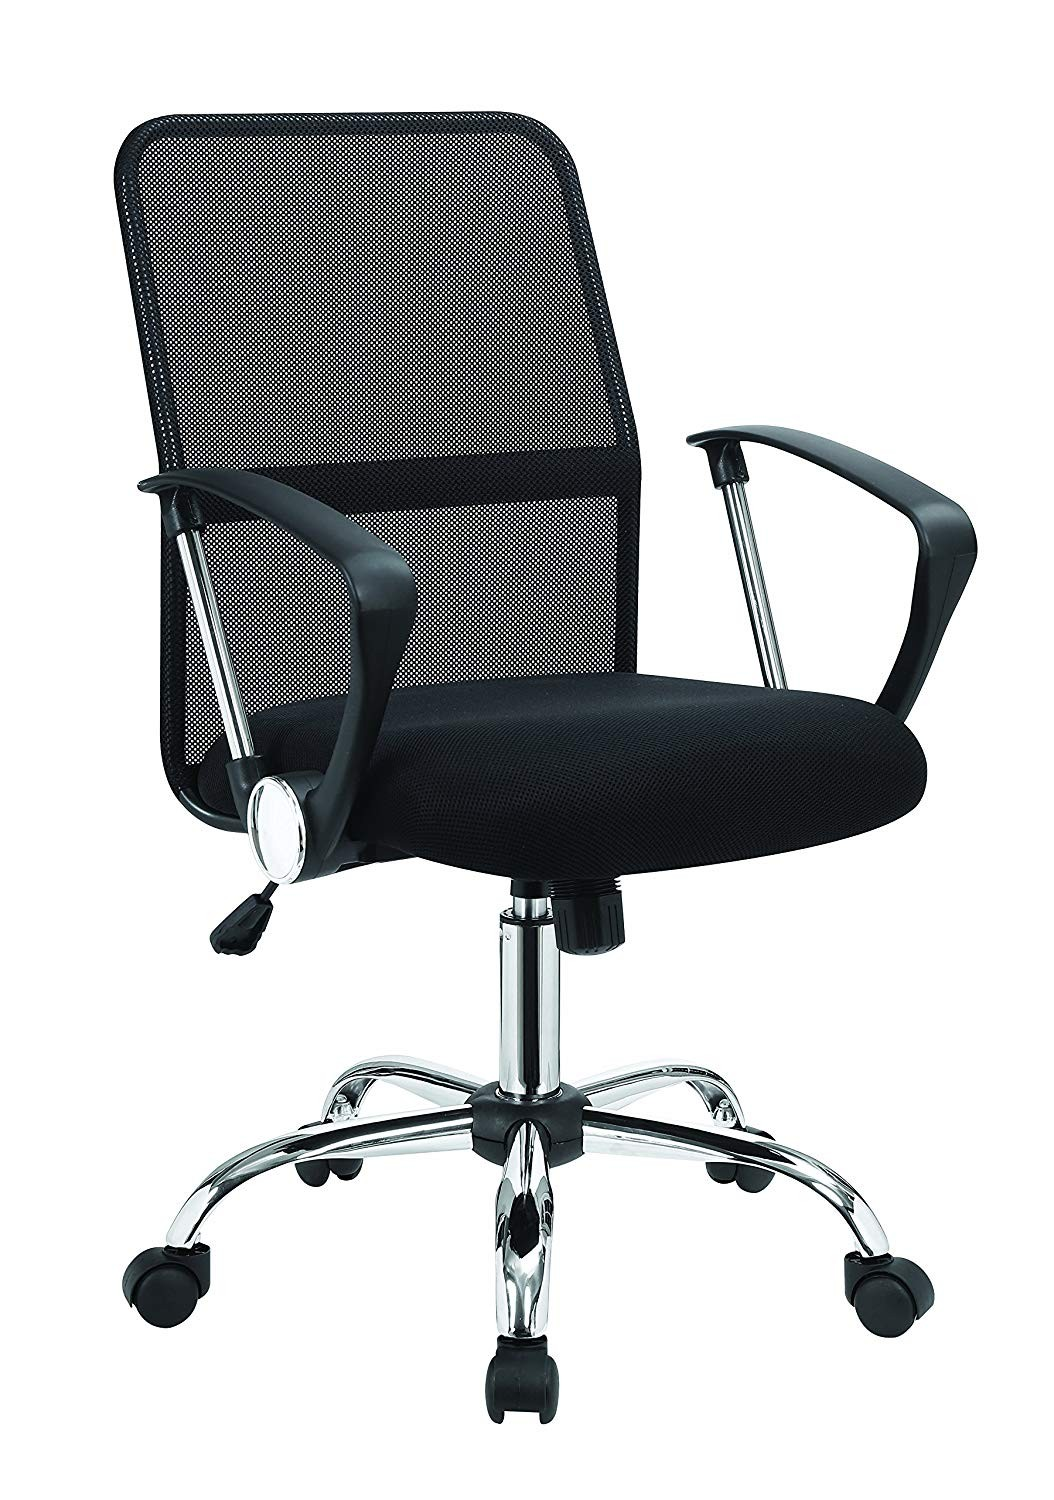 Office Chair w/ Mesh Back